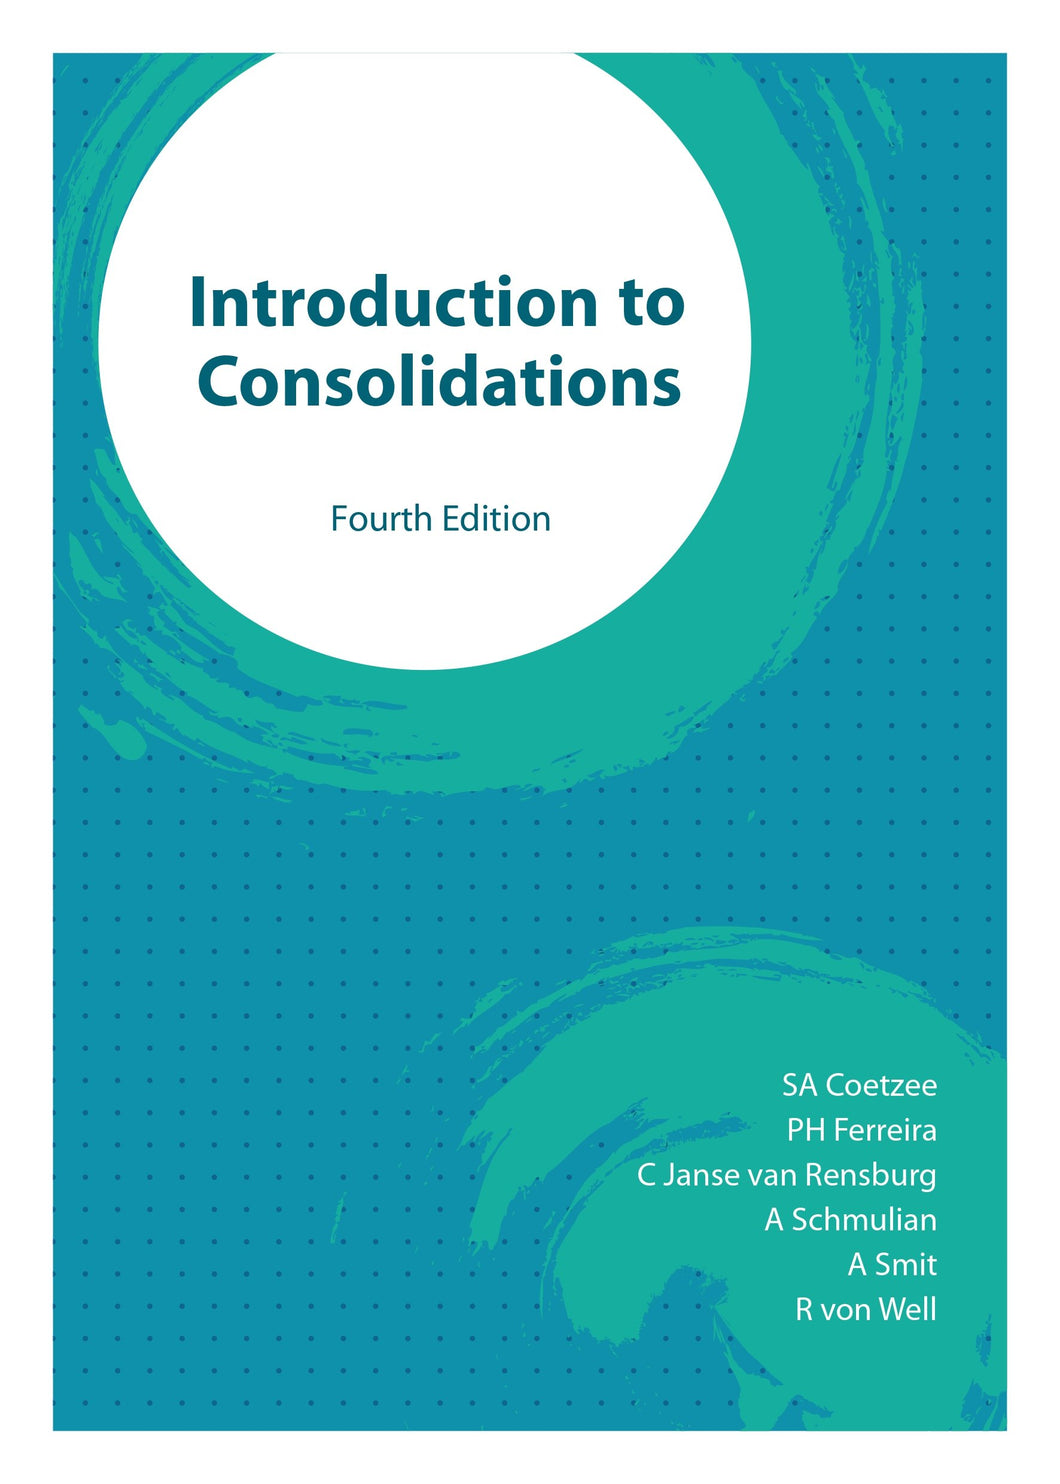 Introduction to Consolidations 4th Edition